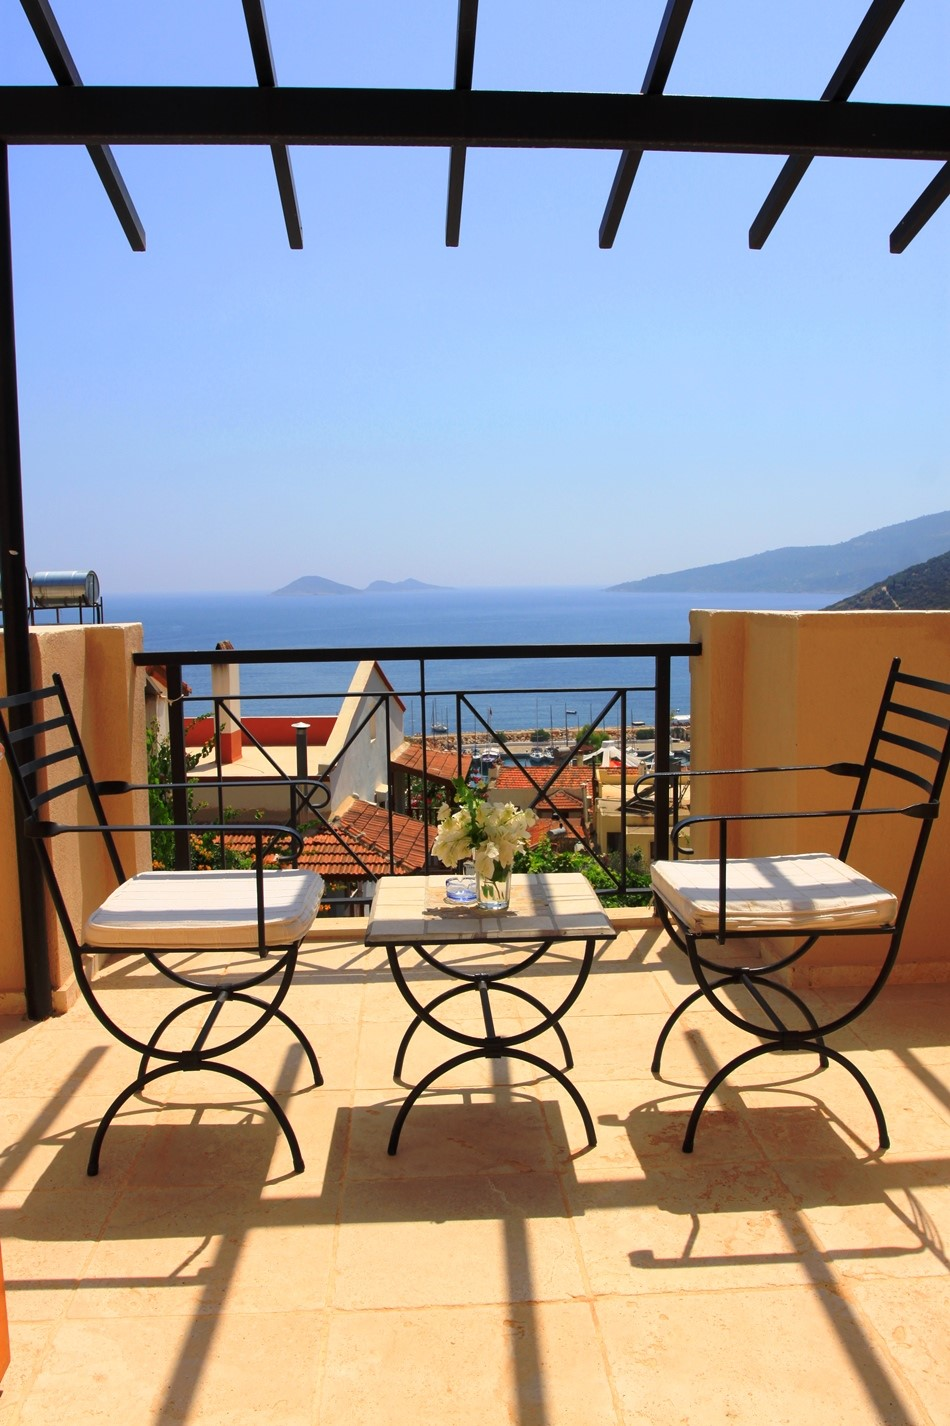 Stunning views over Kalkan's harbour